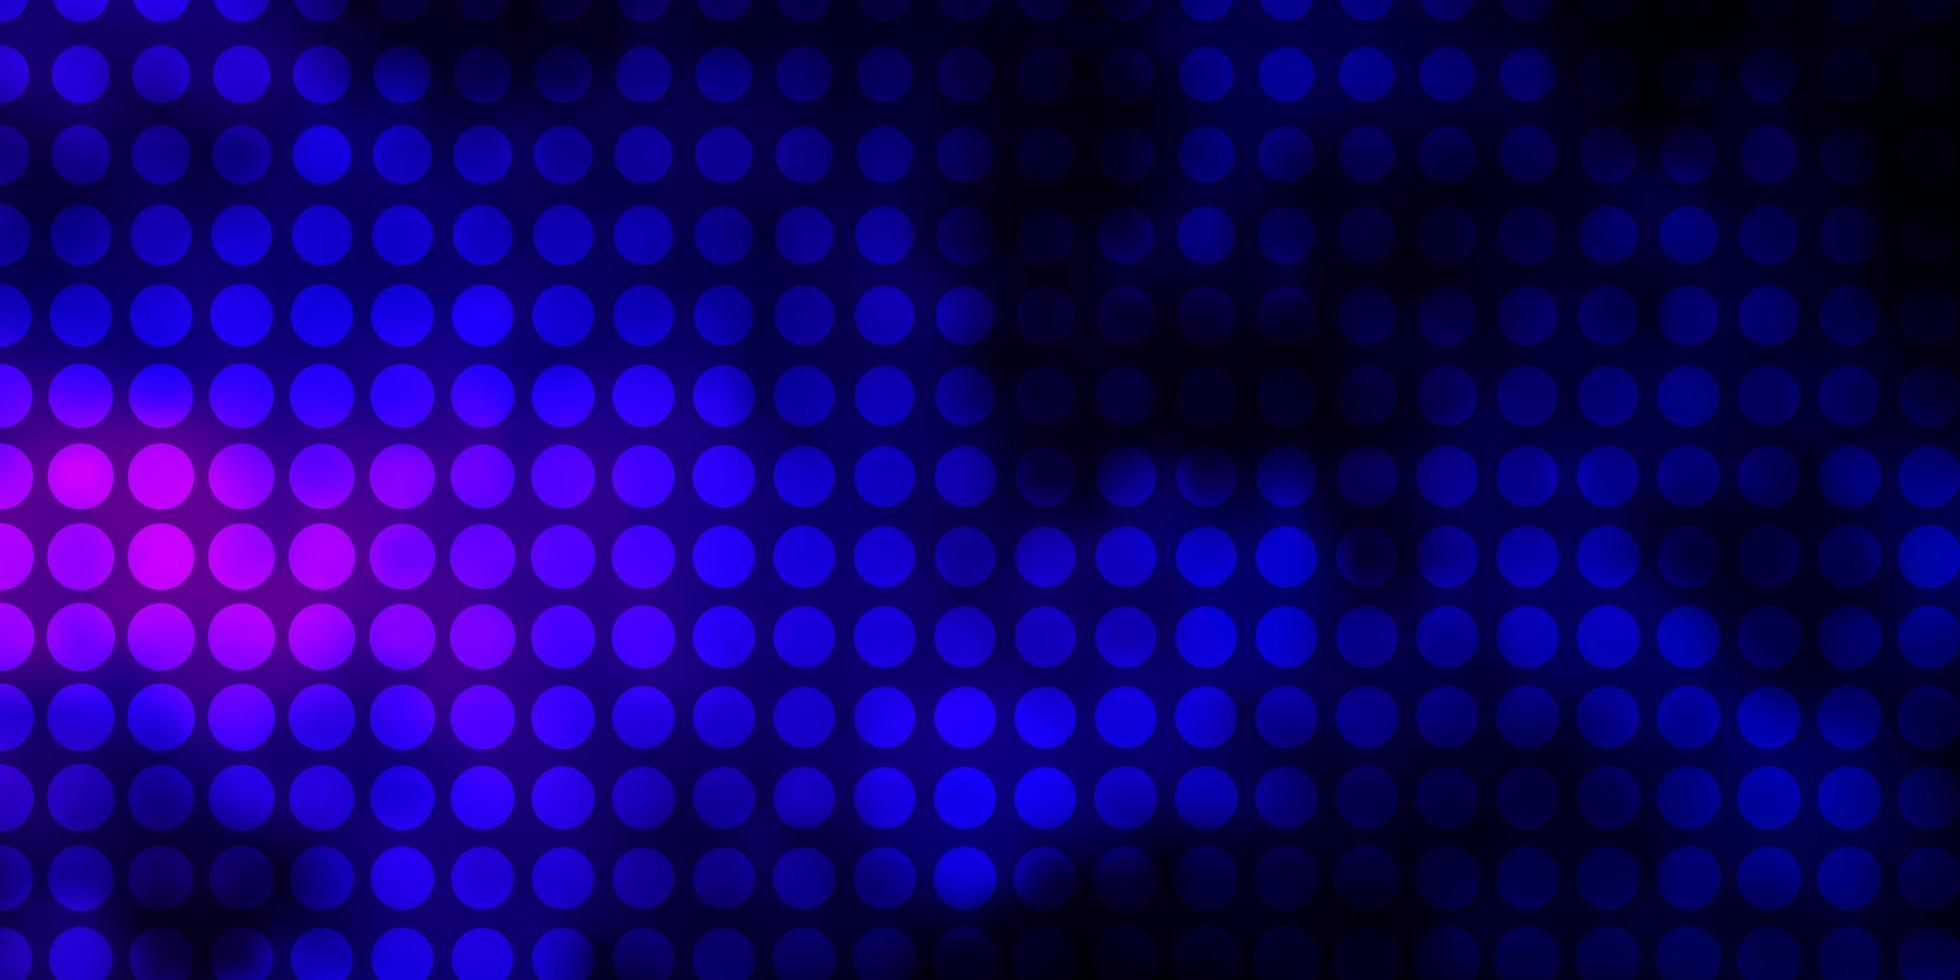 Dark Pink, Blue vector background with circles.